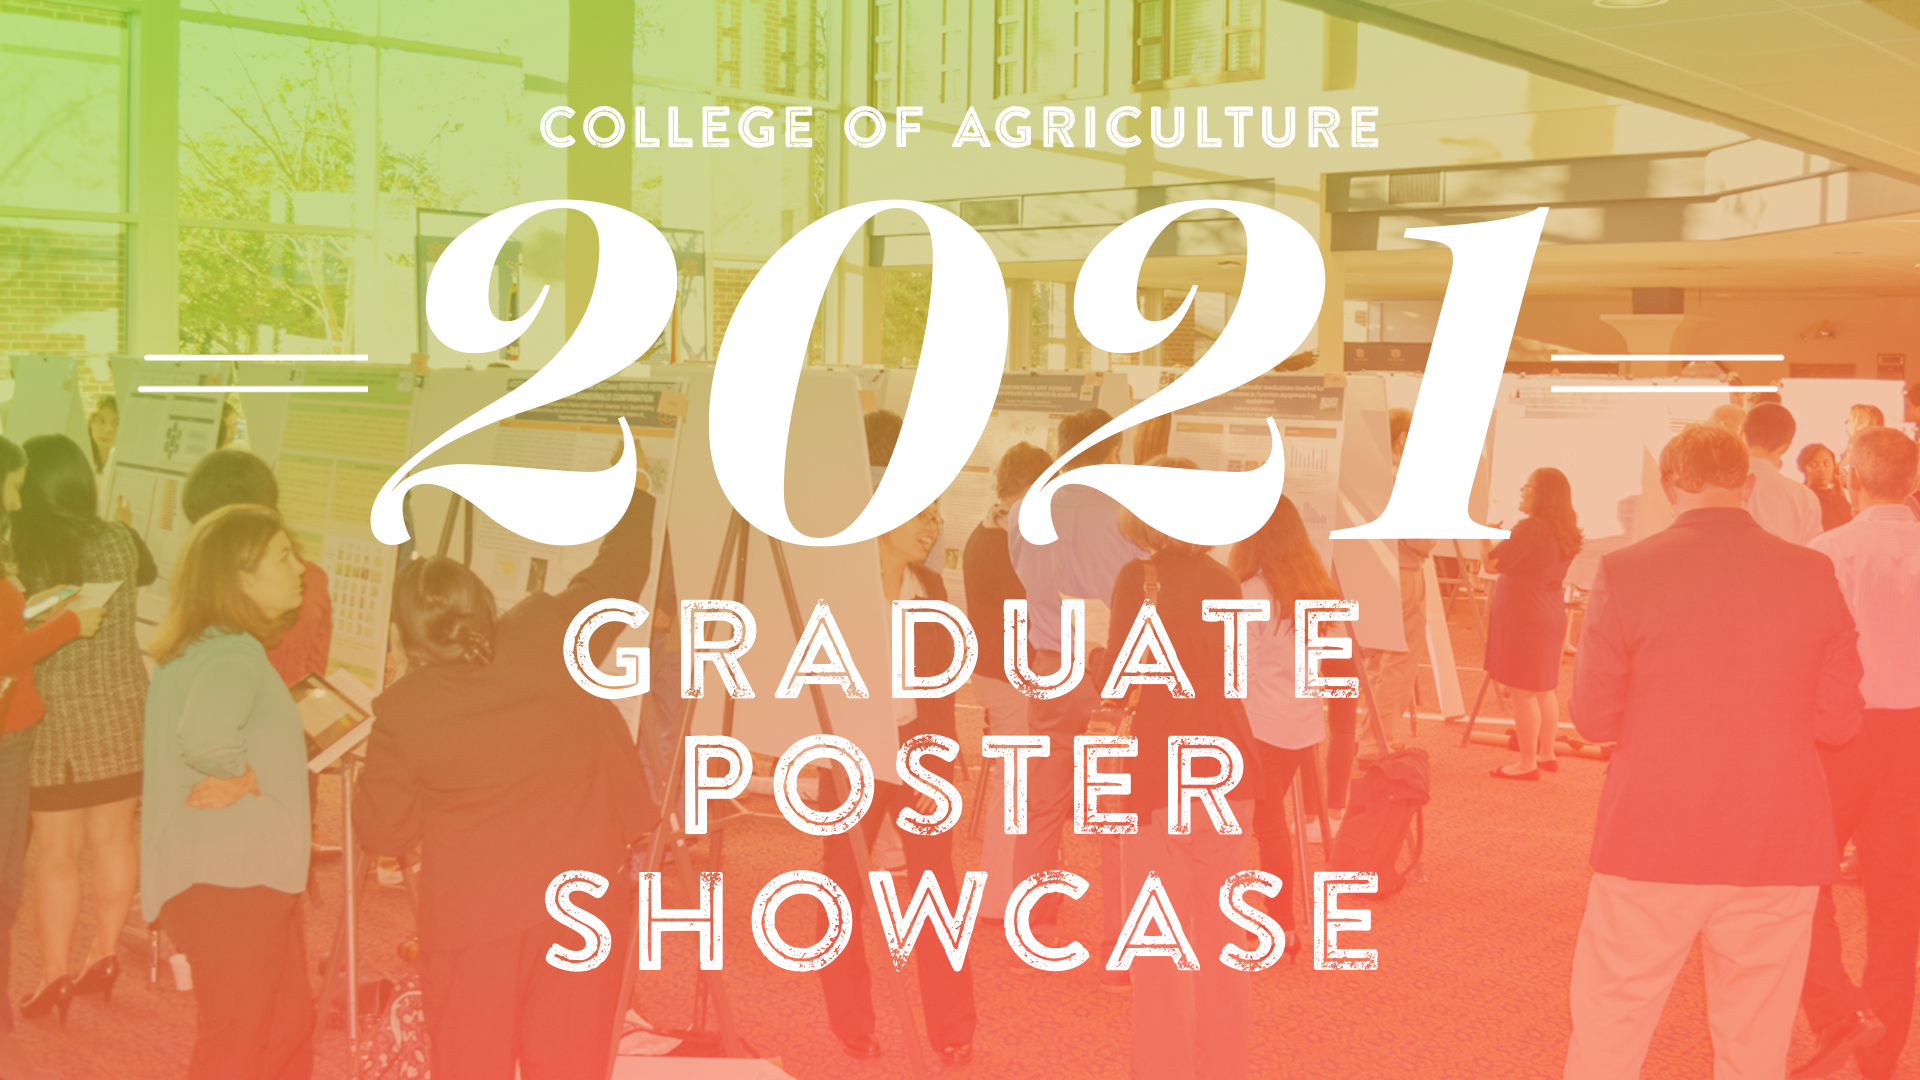 Graduate Student Research Poster Showcase 2021, Auburn University, College of Agriculture